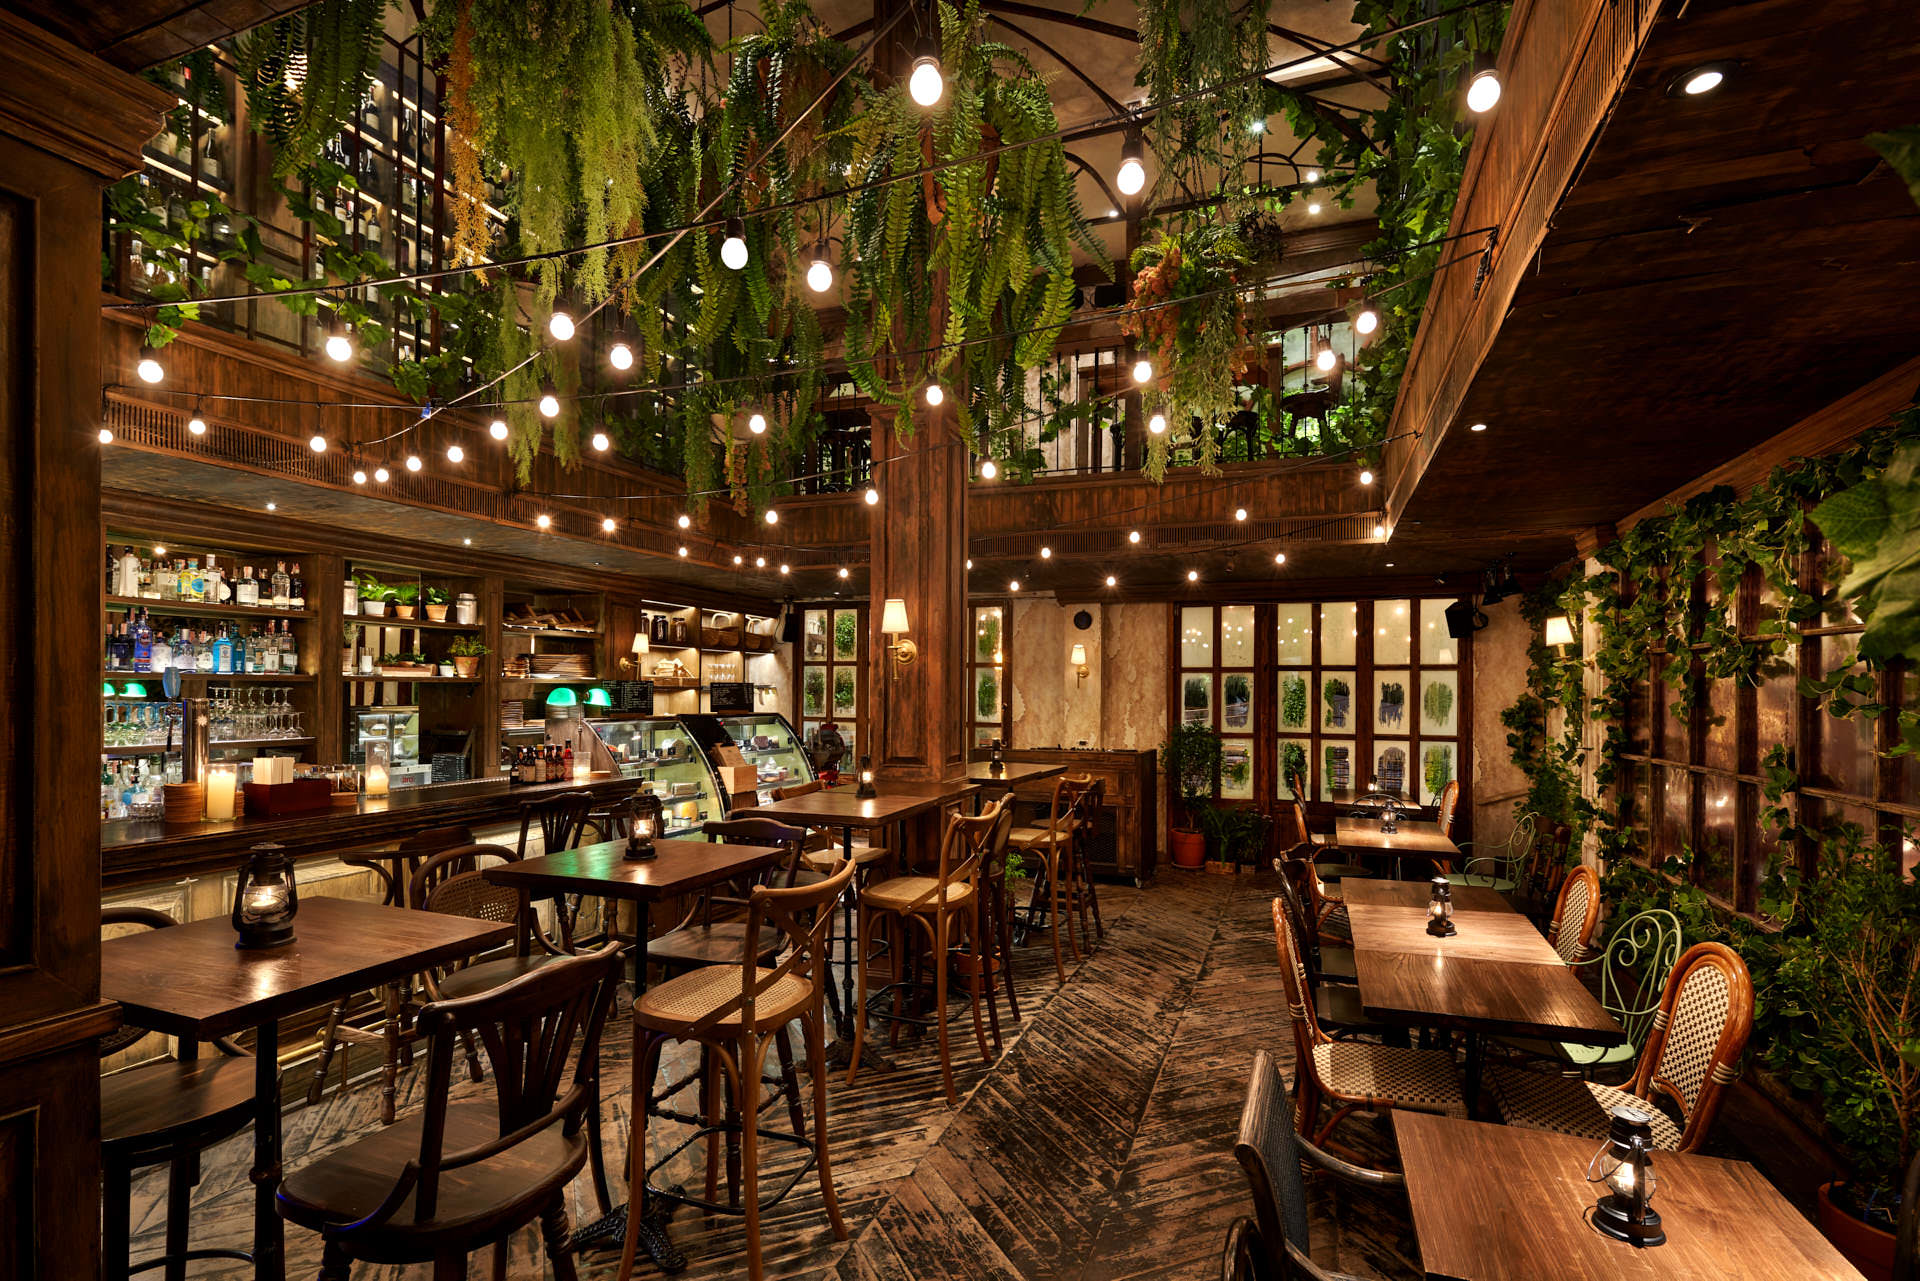 Architectural photography of the lower seating area showing vintage chairs and tables with green hanging plants above